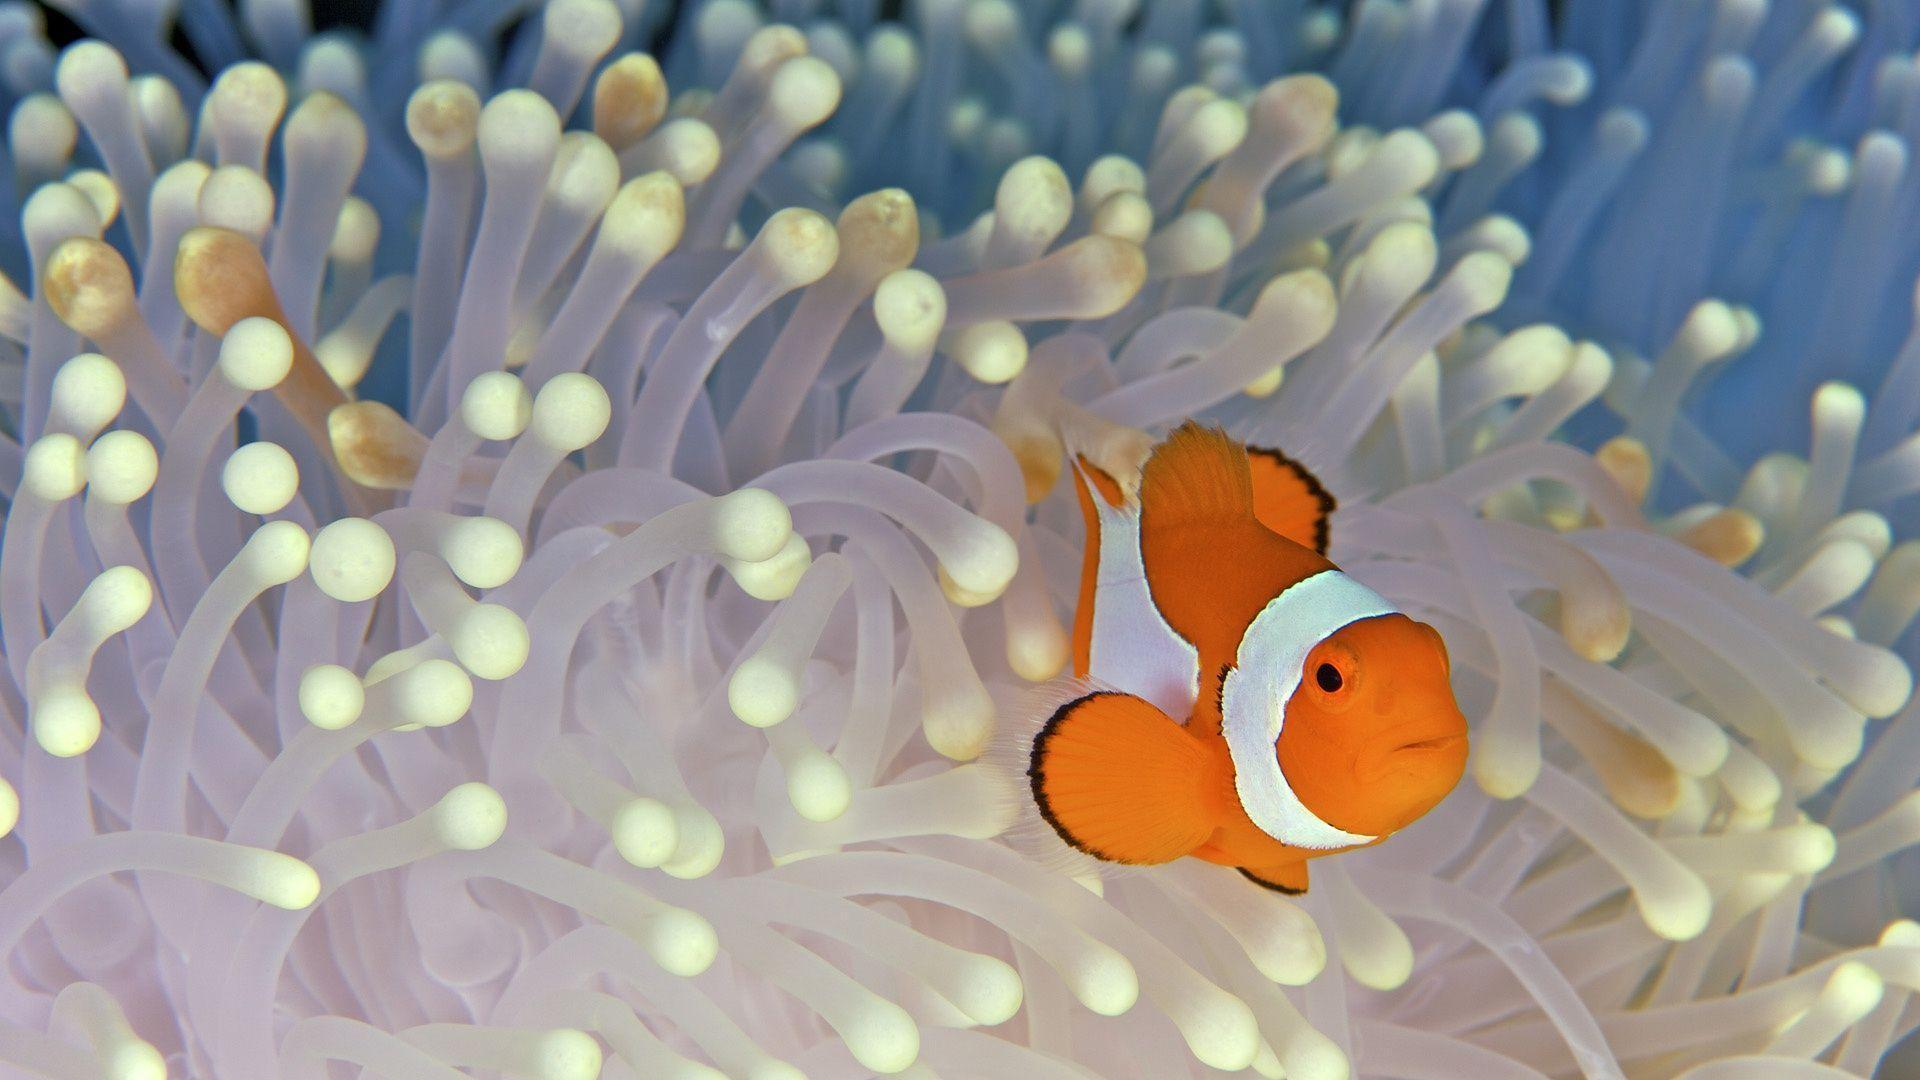 Wallpapers For > Clown Fish Desktop Wallpapers